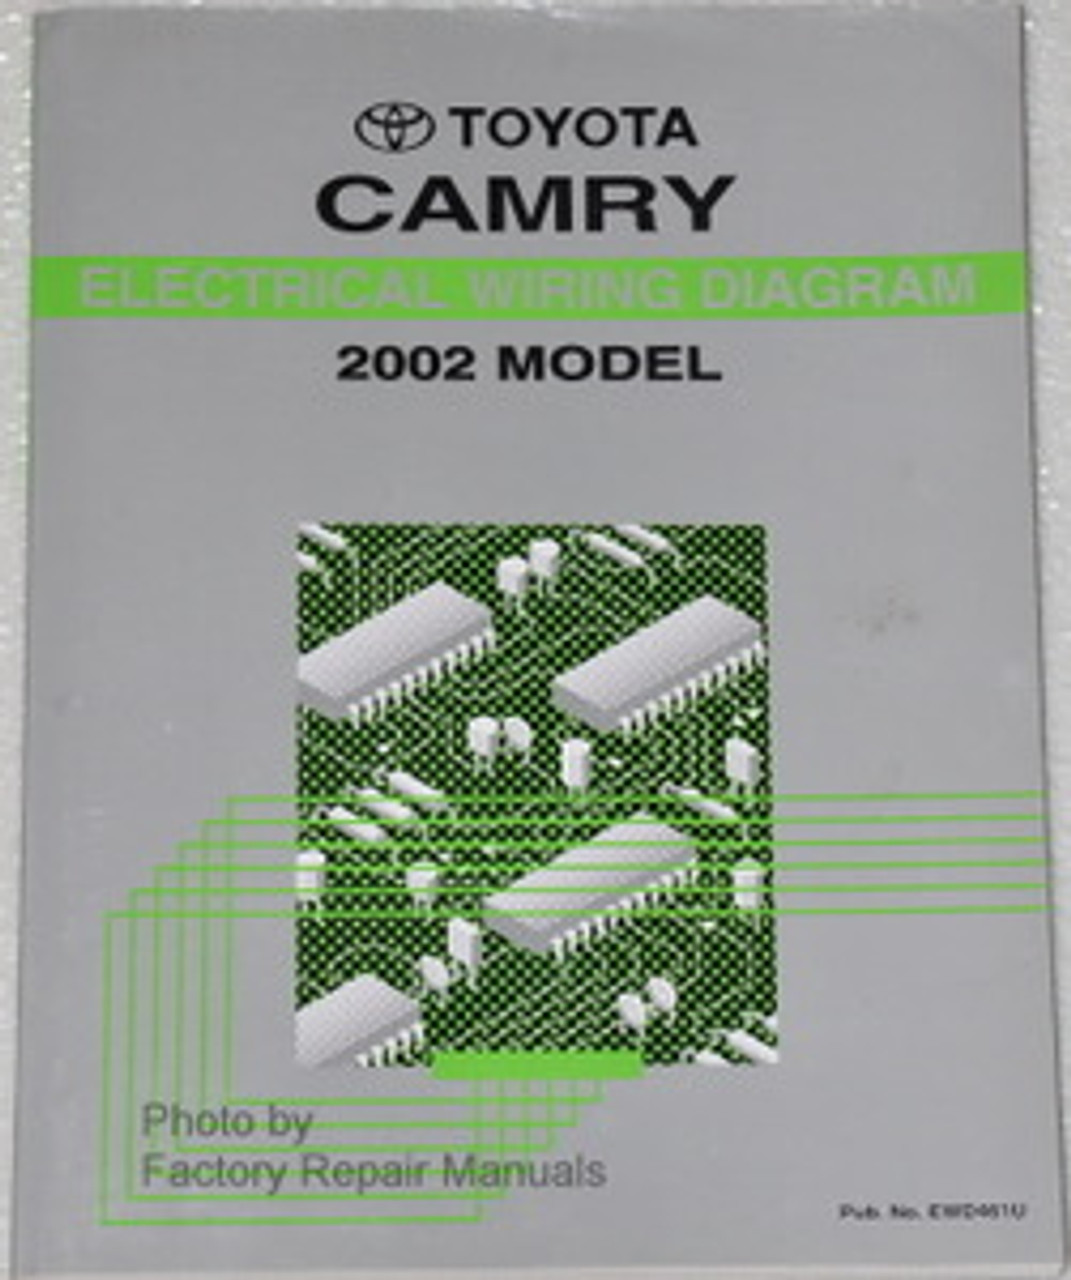 2002 Toyota Camry Electrical Wiring Diagrams Original